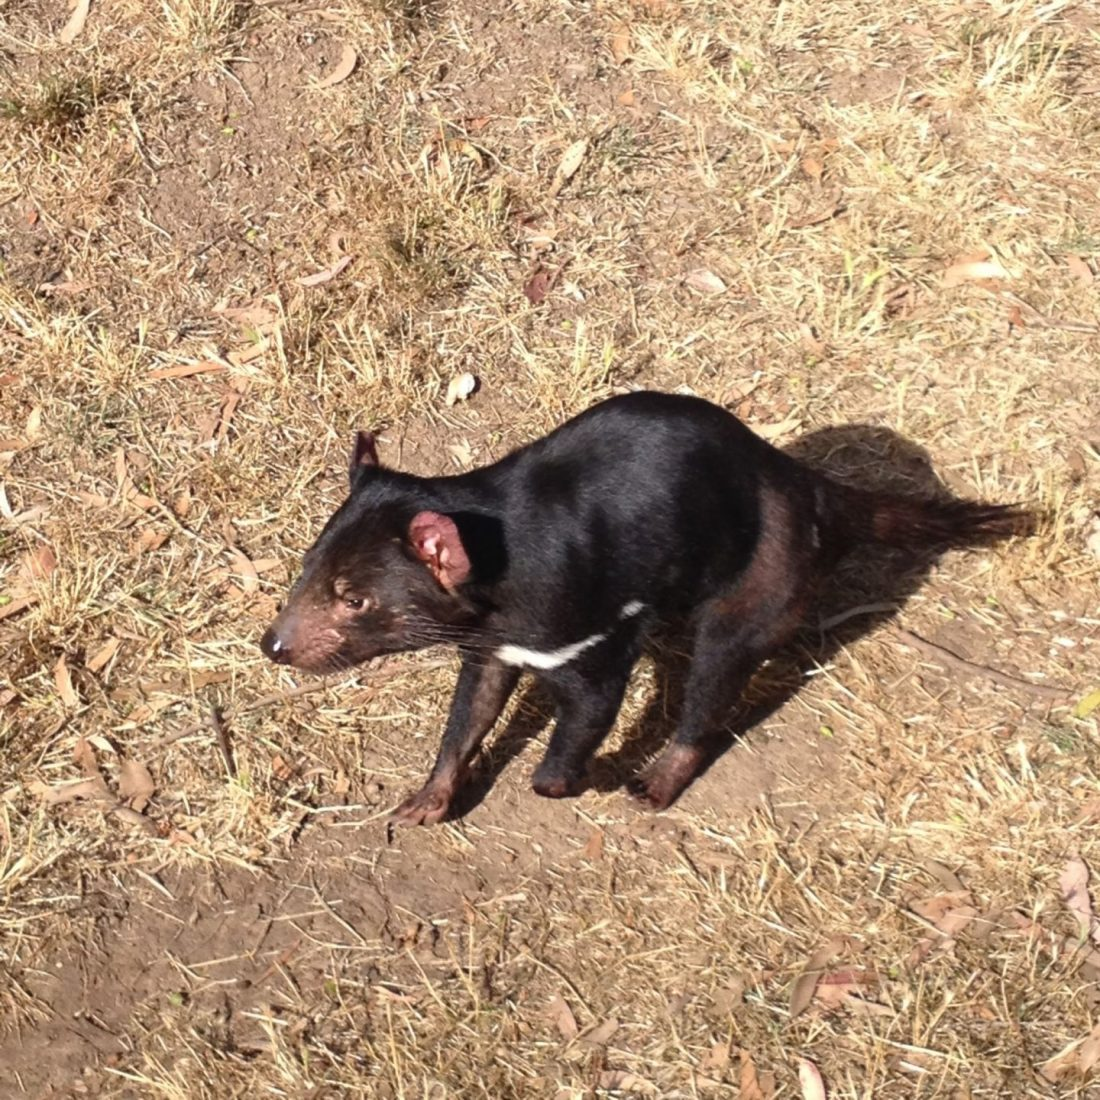 A Tasmanian devil at Phillip Island Wildlife Park